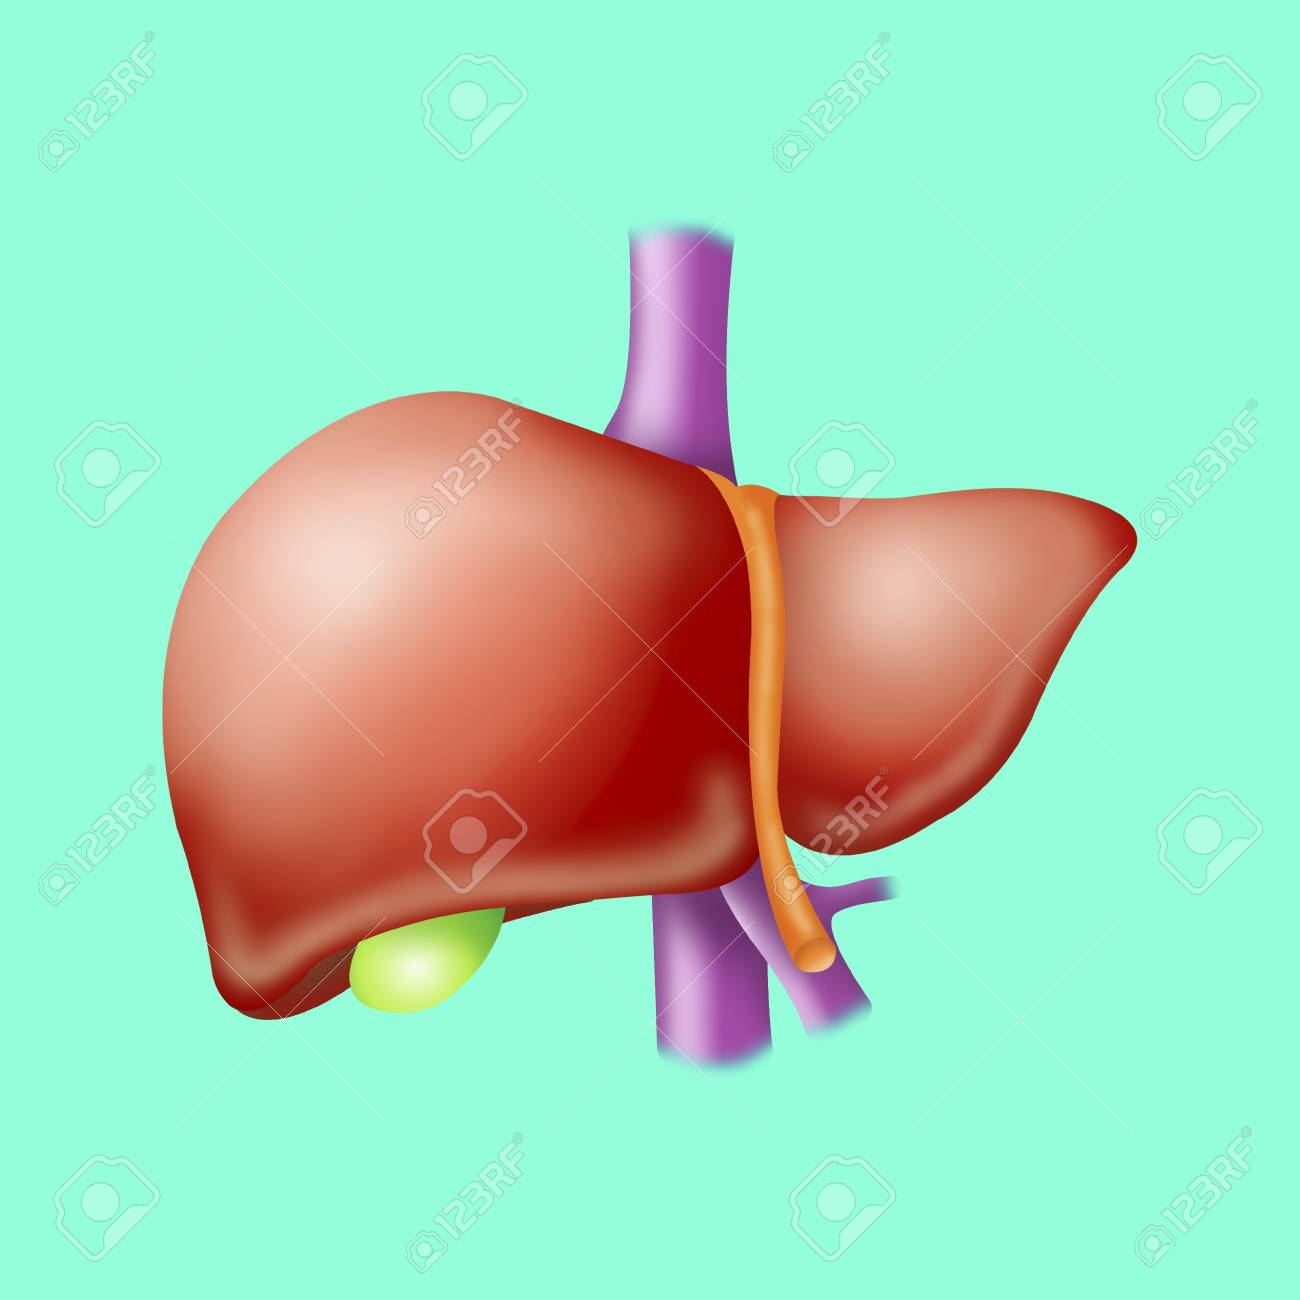 1300x1300 Liver, Drawing Stock Photo, Picture And Royalty Free Image. Image